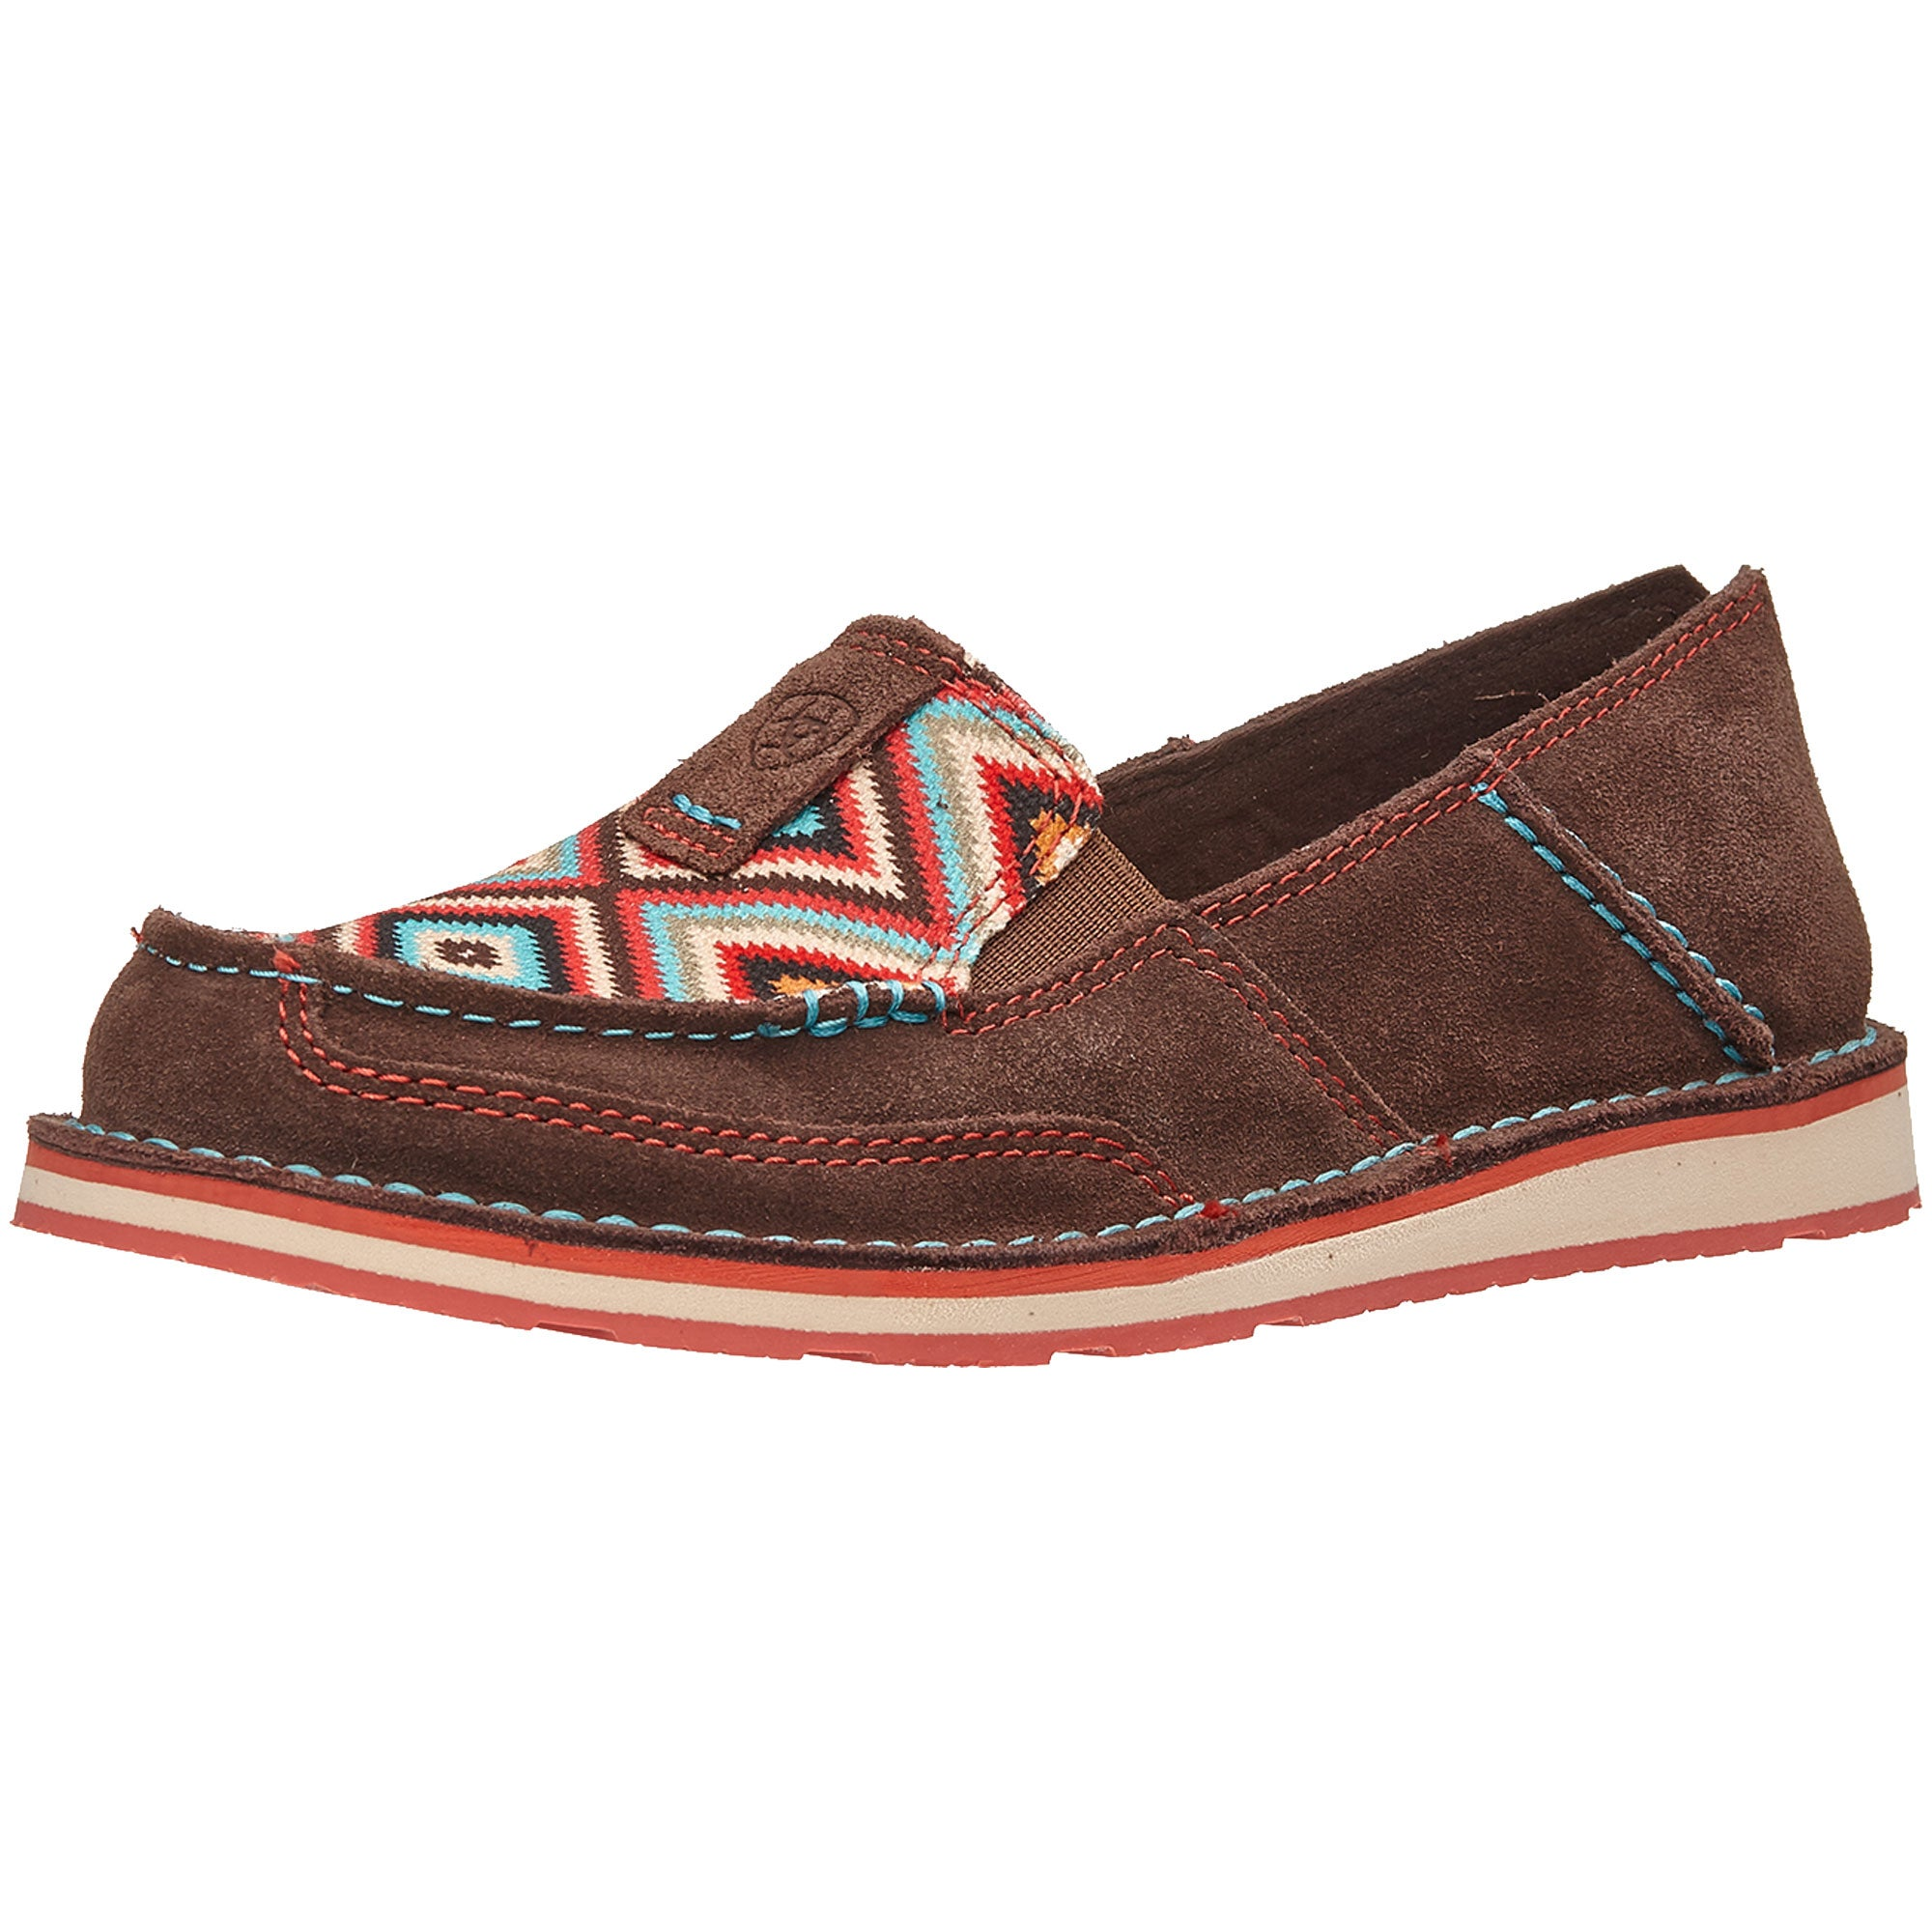 d7d758011437 Ariat Western Cruiser Women's Shoes Pastel Aztec Print - Riding ...